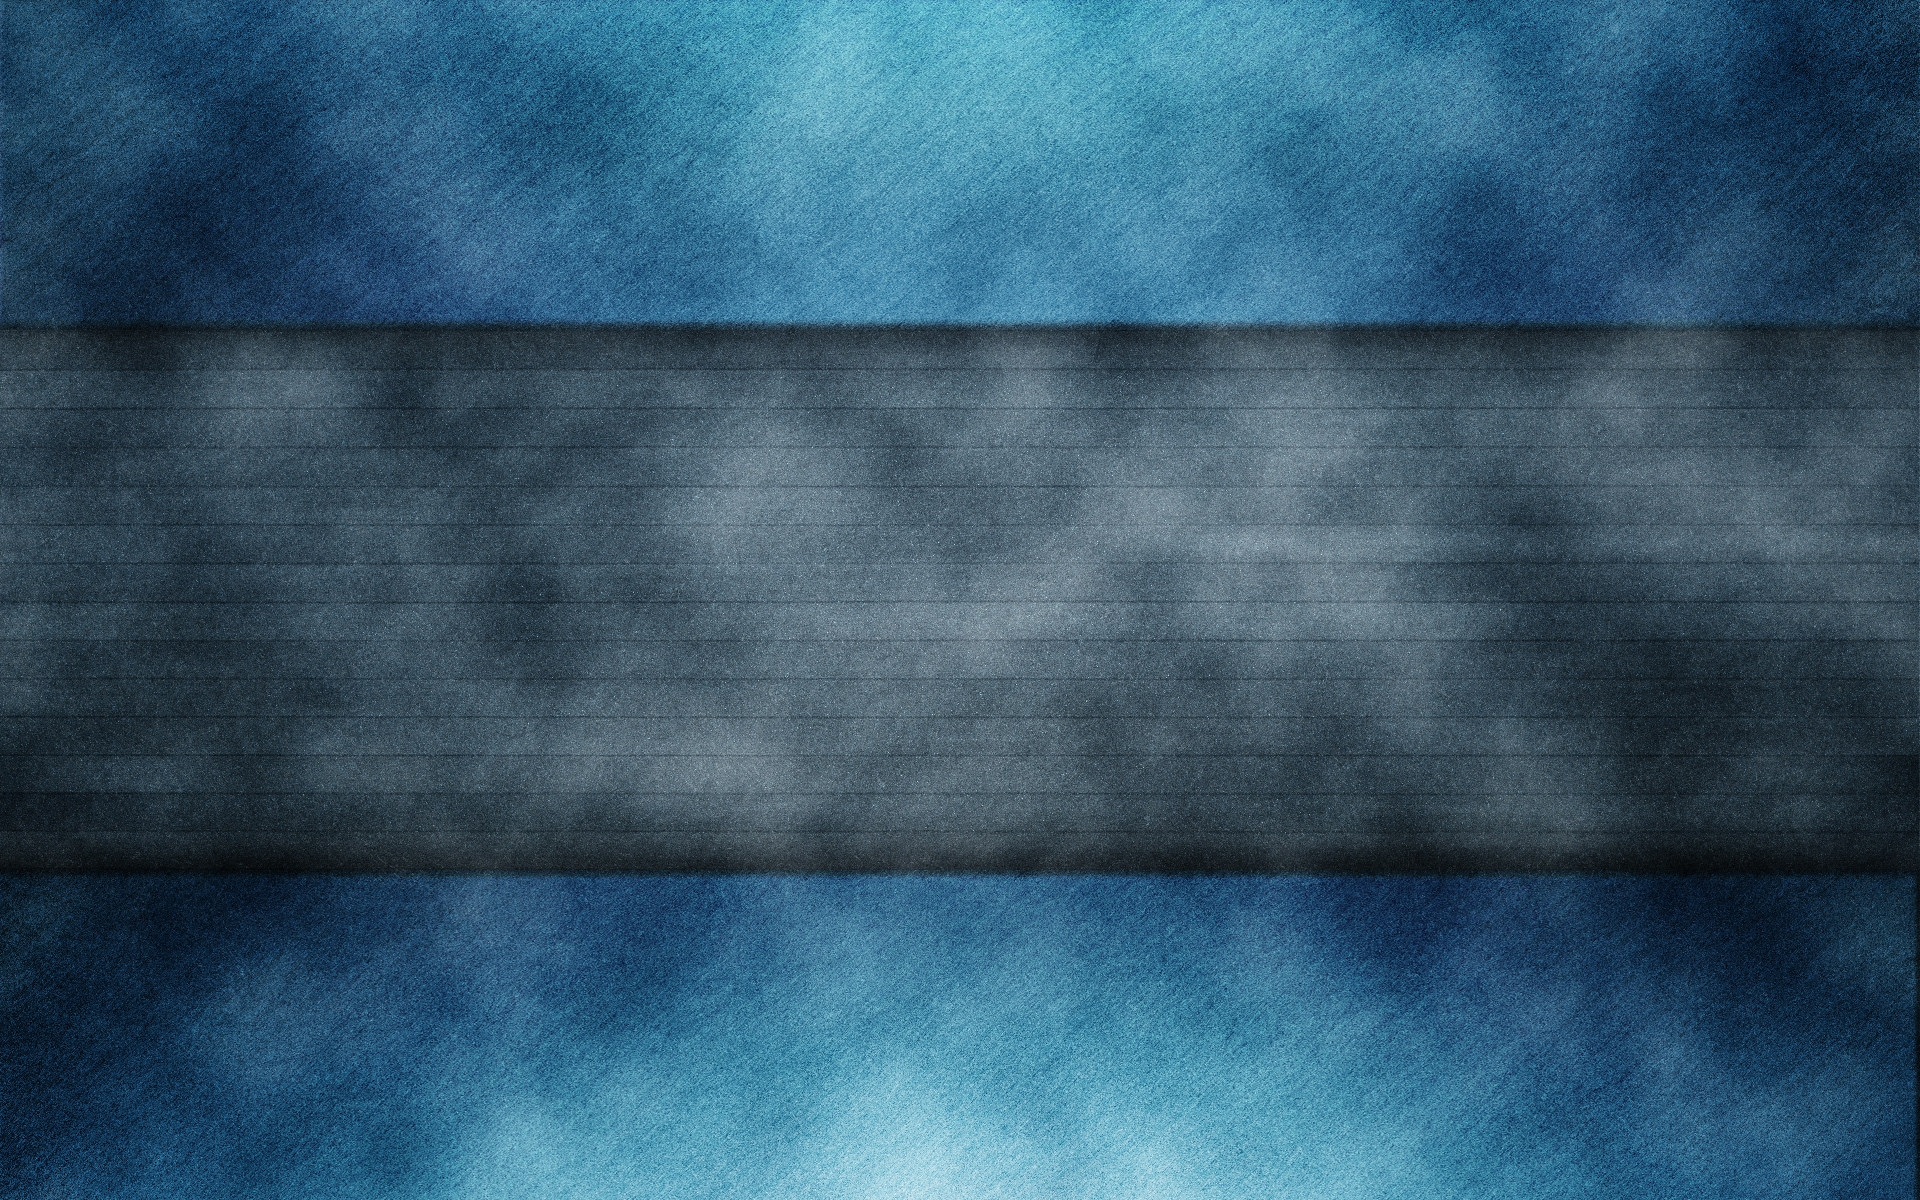 Line Texture Background : Blue textured backgrounds wallpapers images